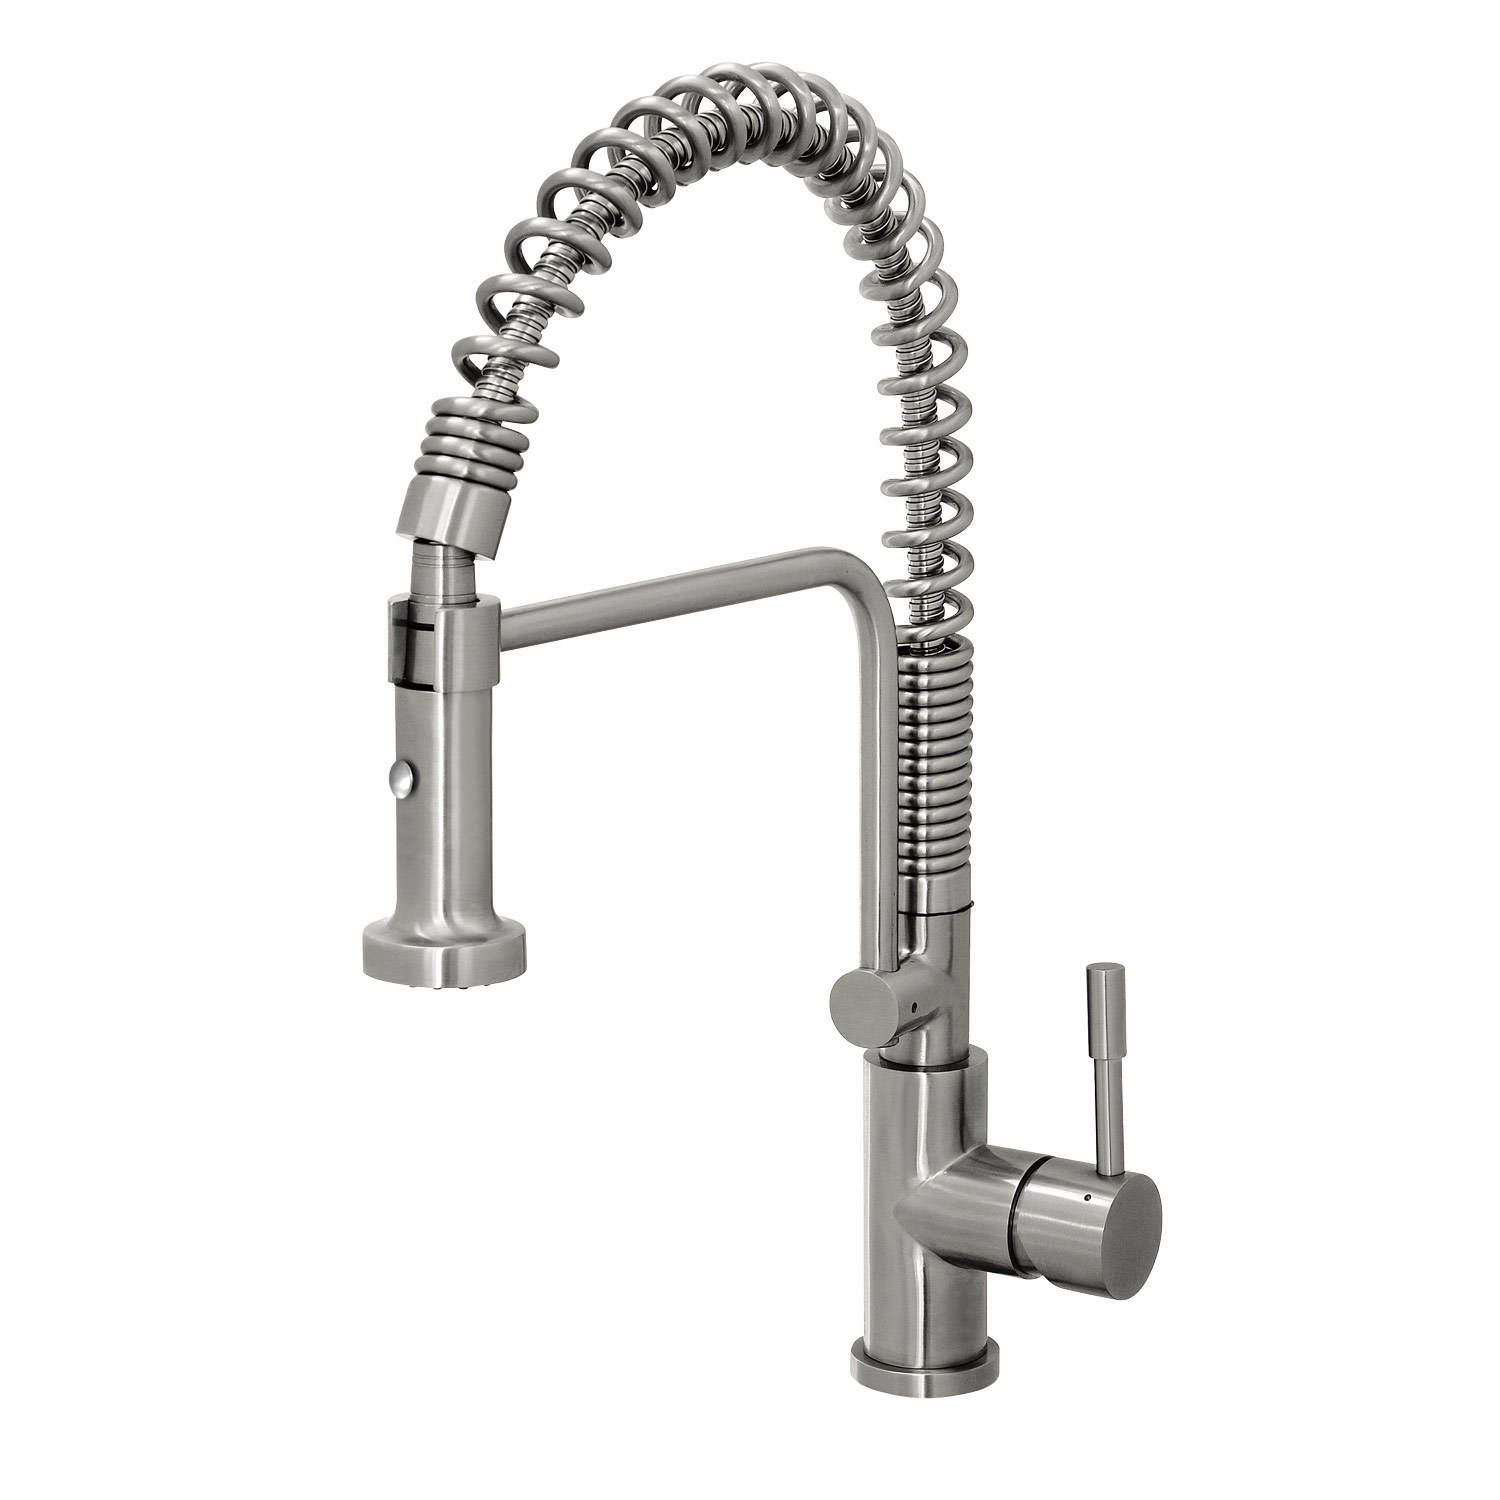 affordable kitchen brushed nickel lowes ideas at for design stainless stylish faucets steel modern faucet